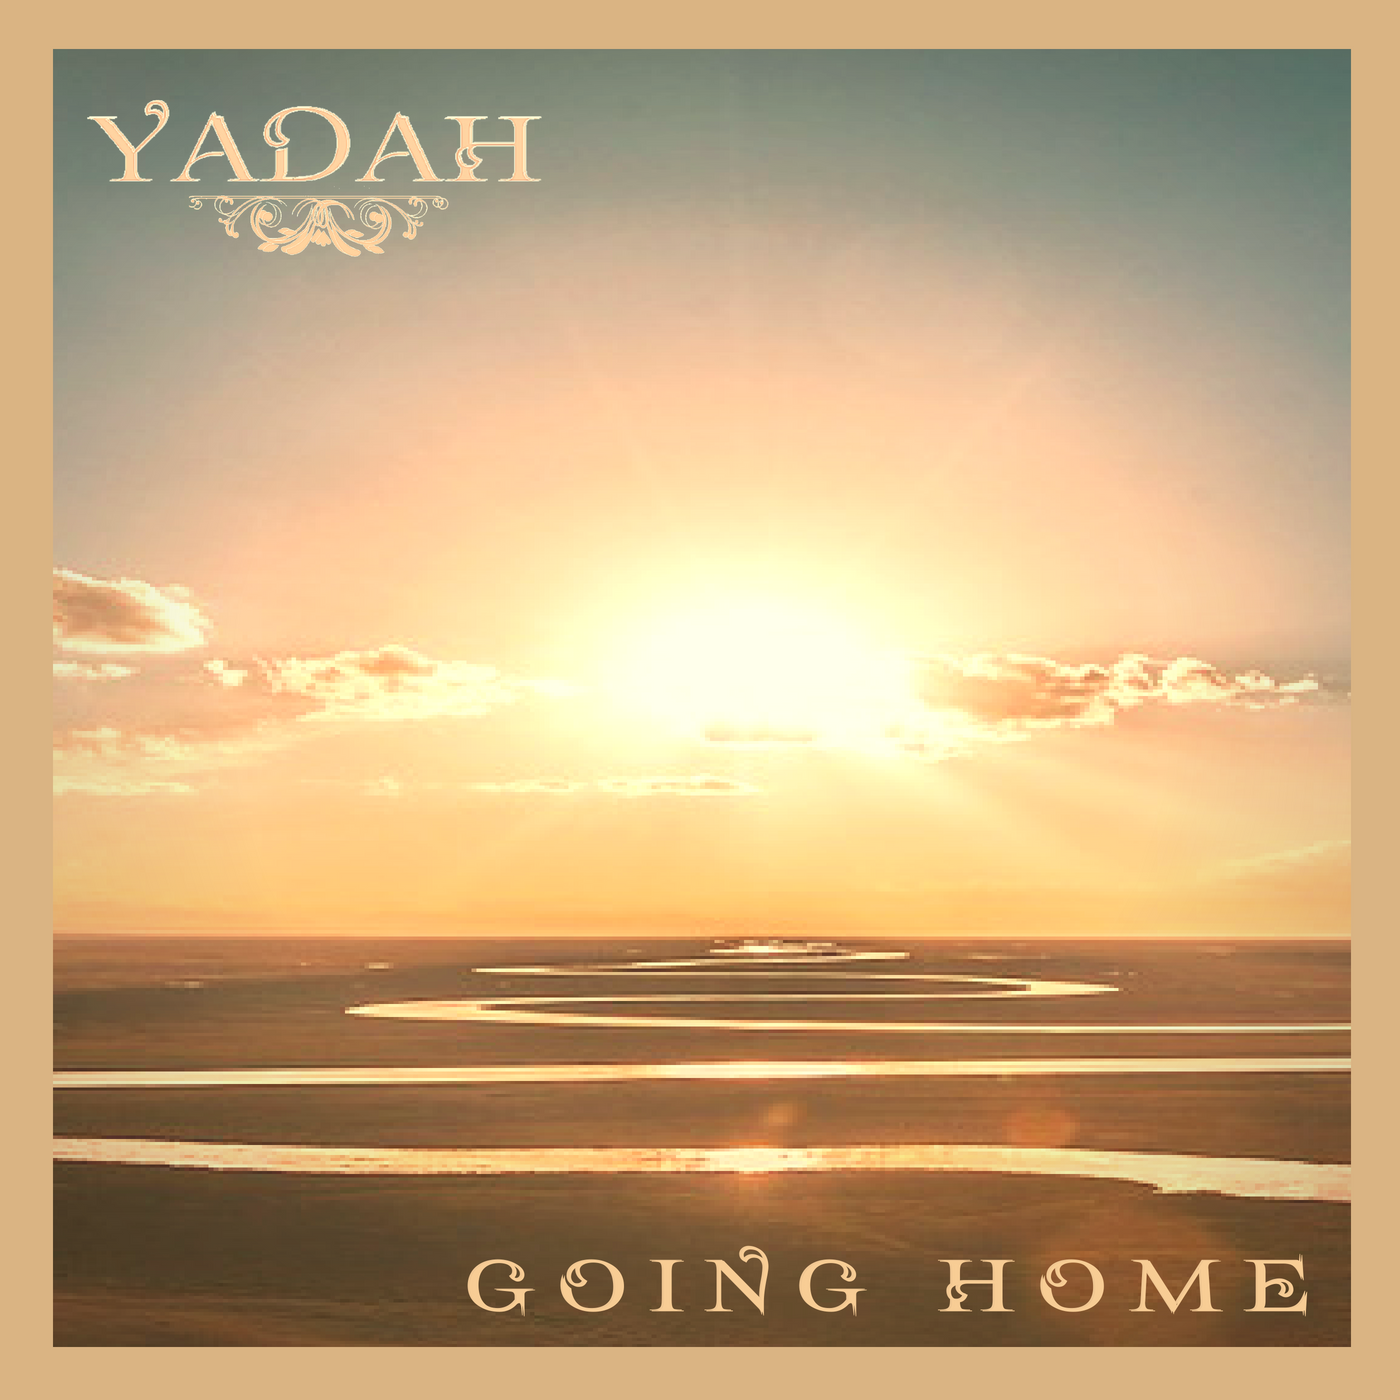 Yadah _Going Home_ Cover